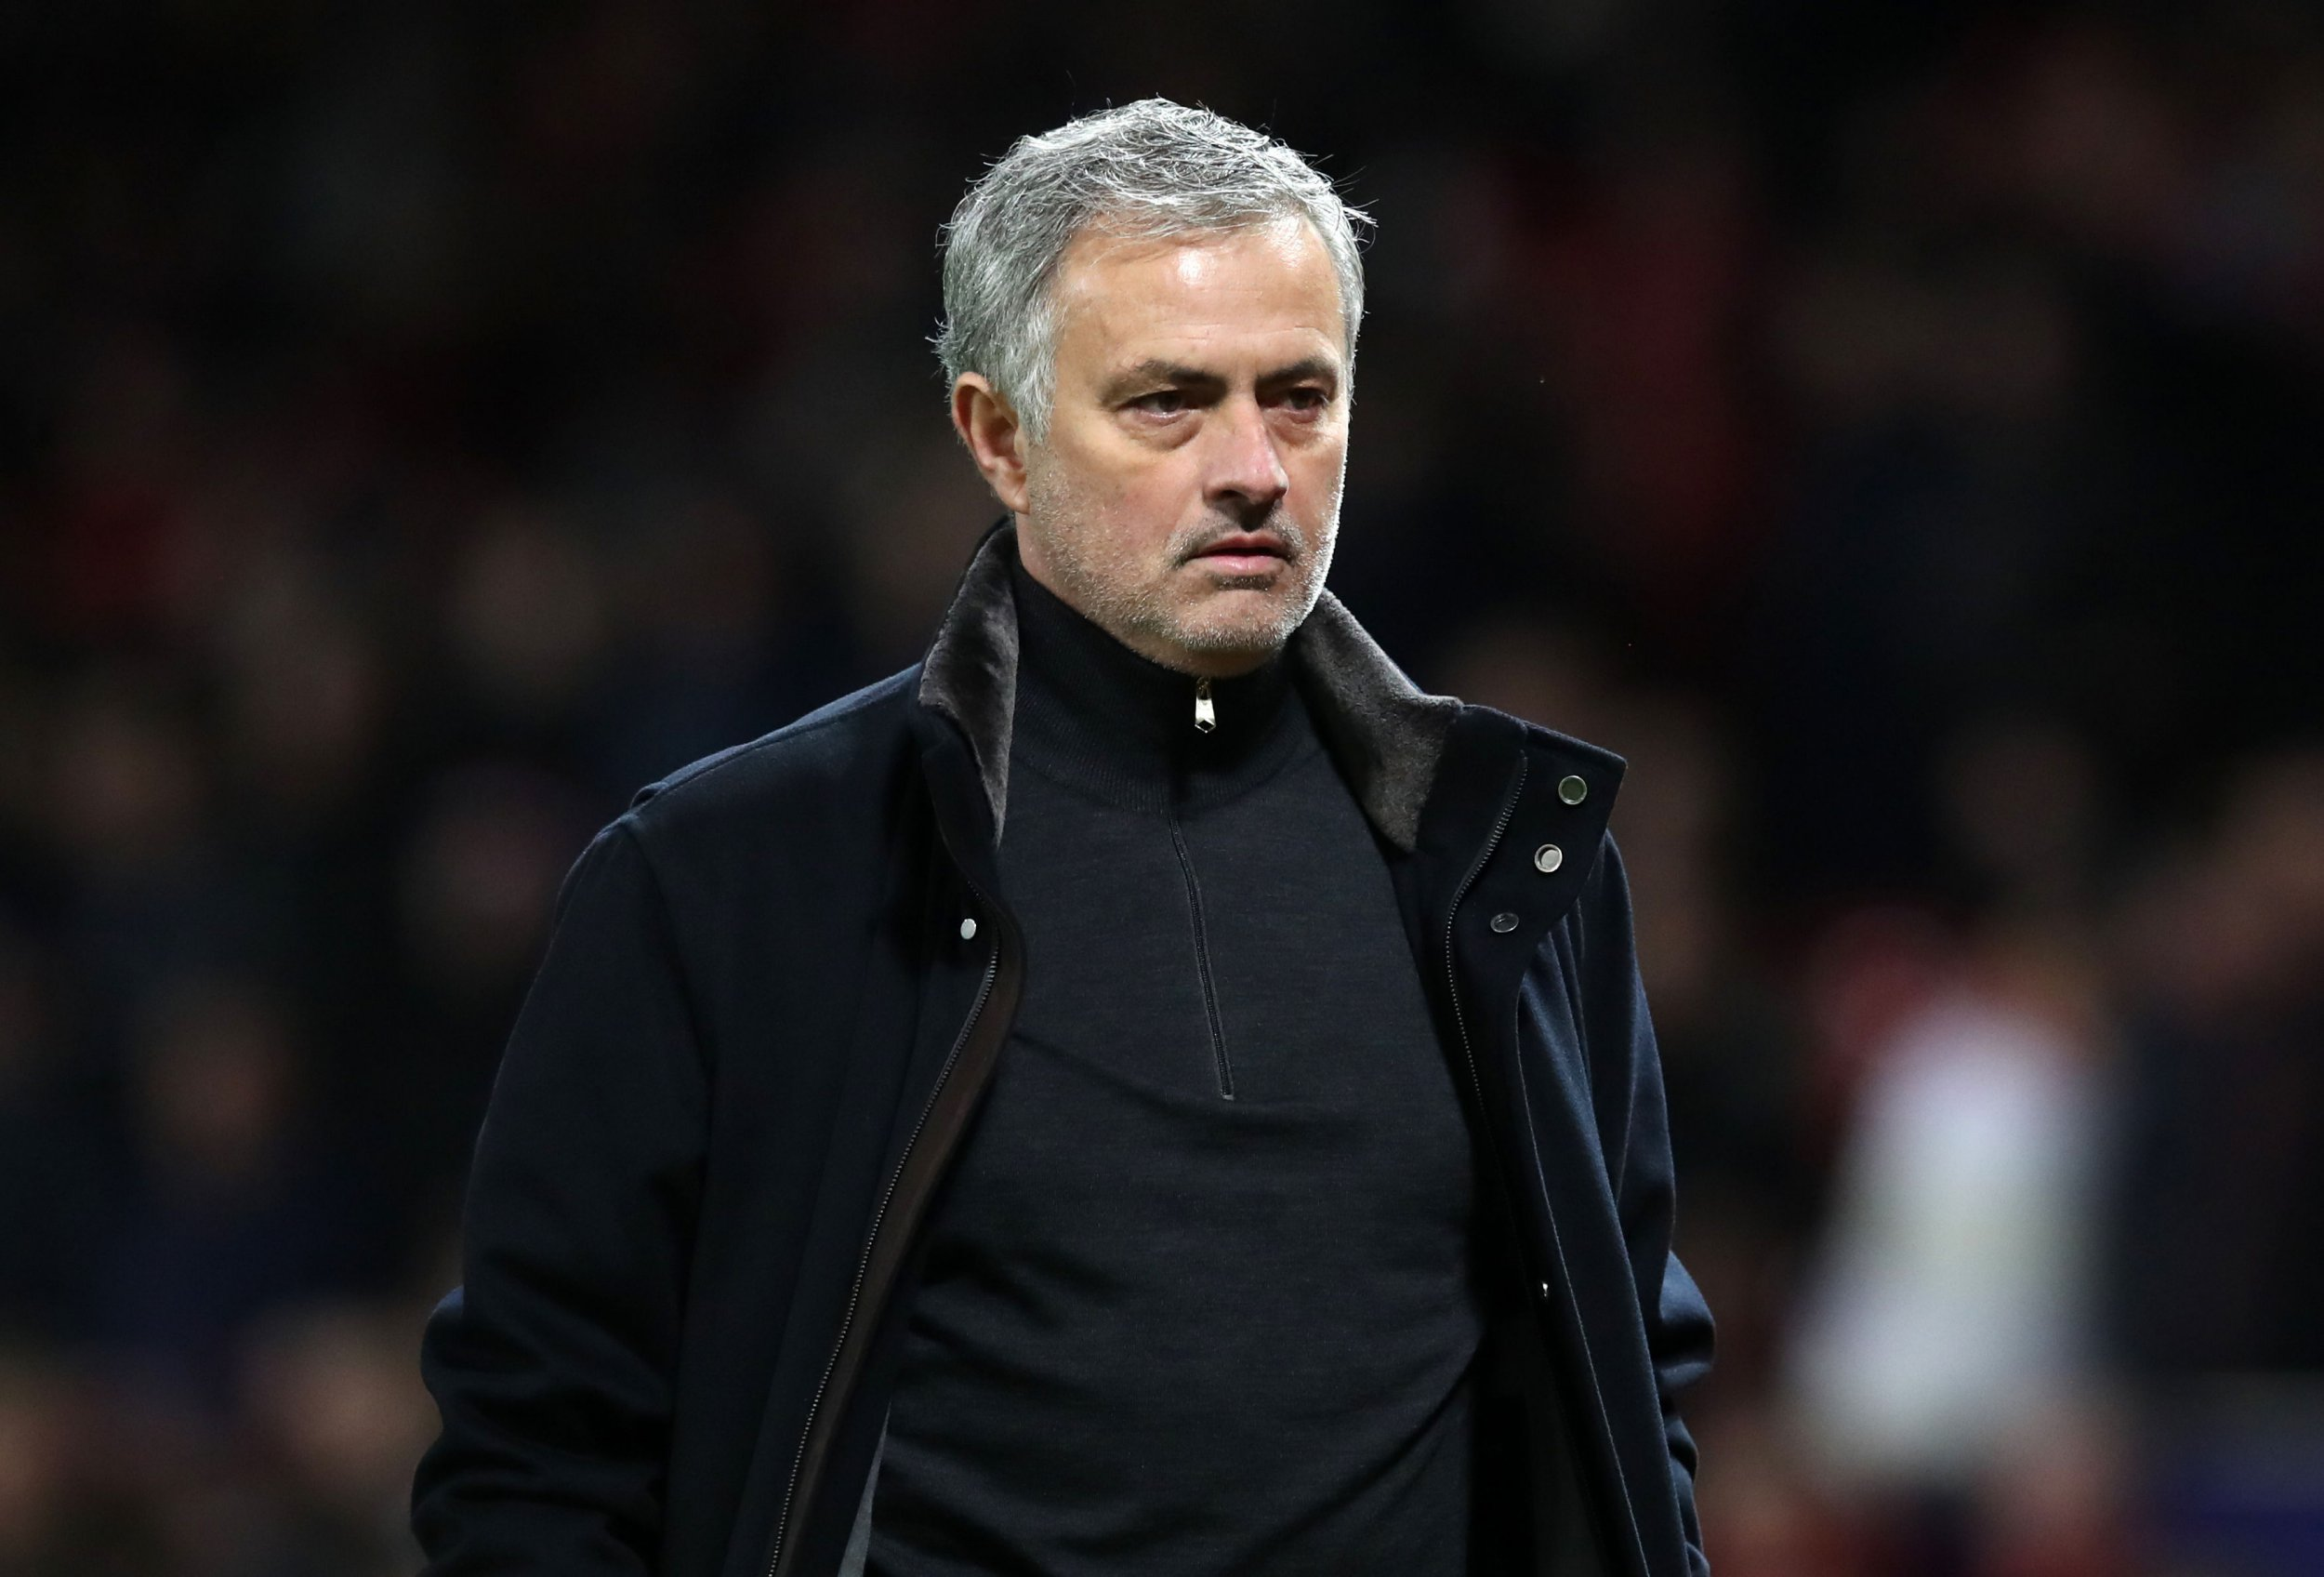 Manchester United manager Jose Mourinho looks dejected after the UEFA Champions League round of 16, second leg match at Old Trafford, Manchester. PRESS ASSOCIATION Photo. Picture date: Tuesday March 13, 2018. See PA story SOCCER Man Utd. Photo credit should read: Martin Rickett/PA Wire